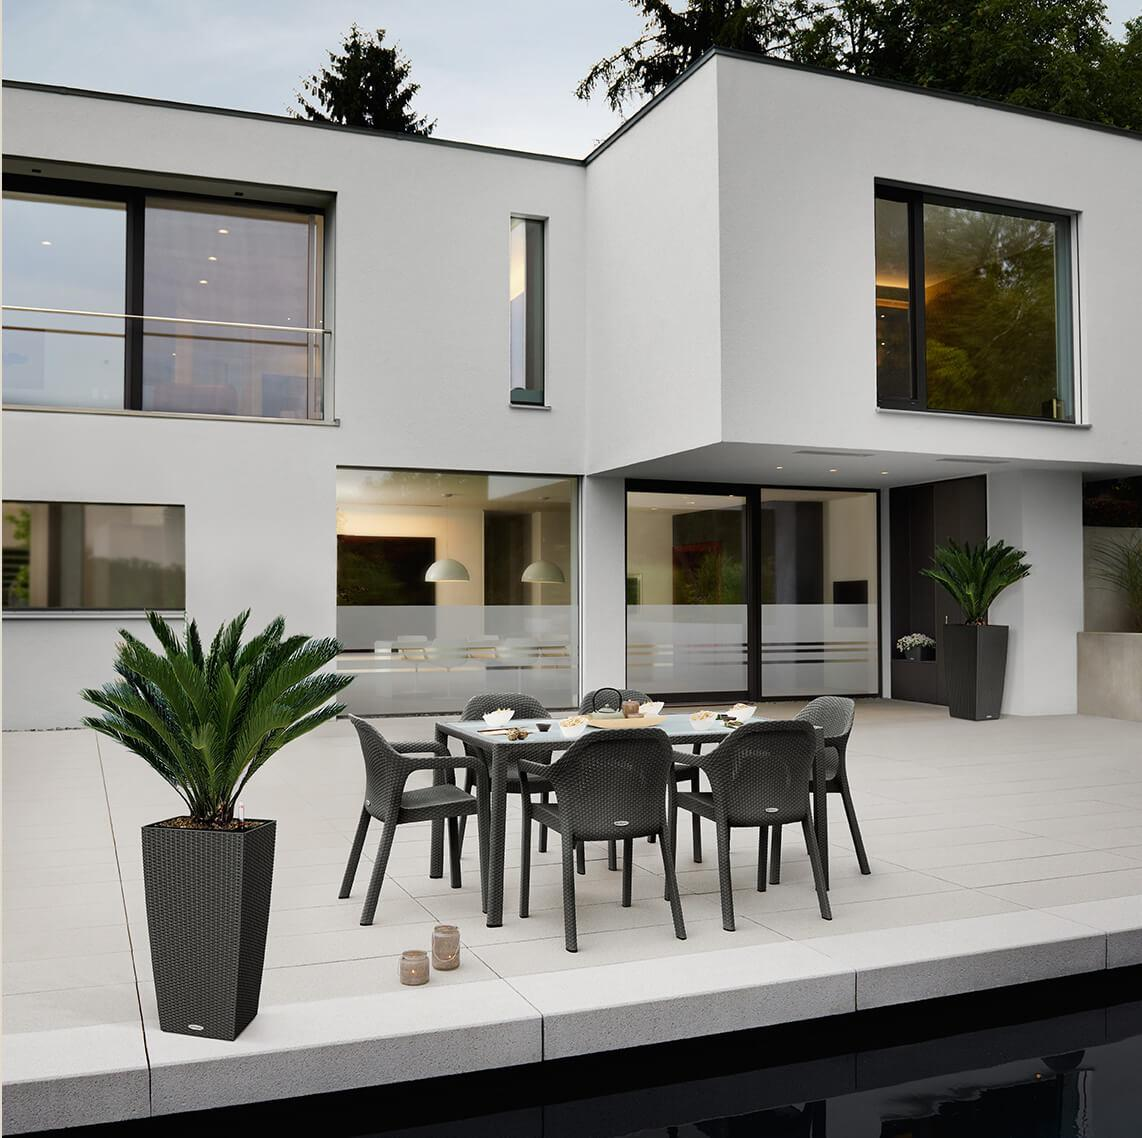 Modern Bauhaus villa at dusk. On the terrace in front of the villa there is a LECHUZA 7-seater suite in the colour granite